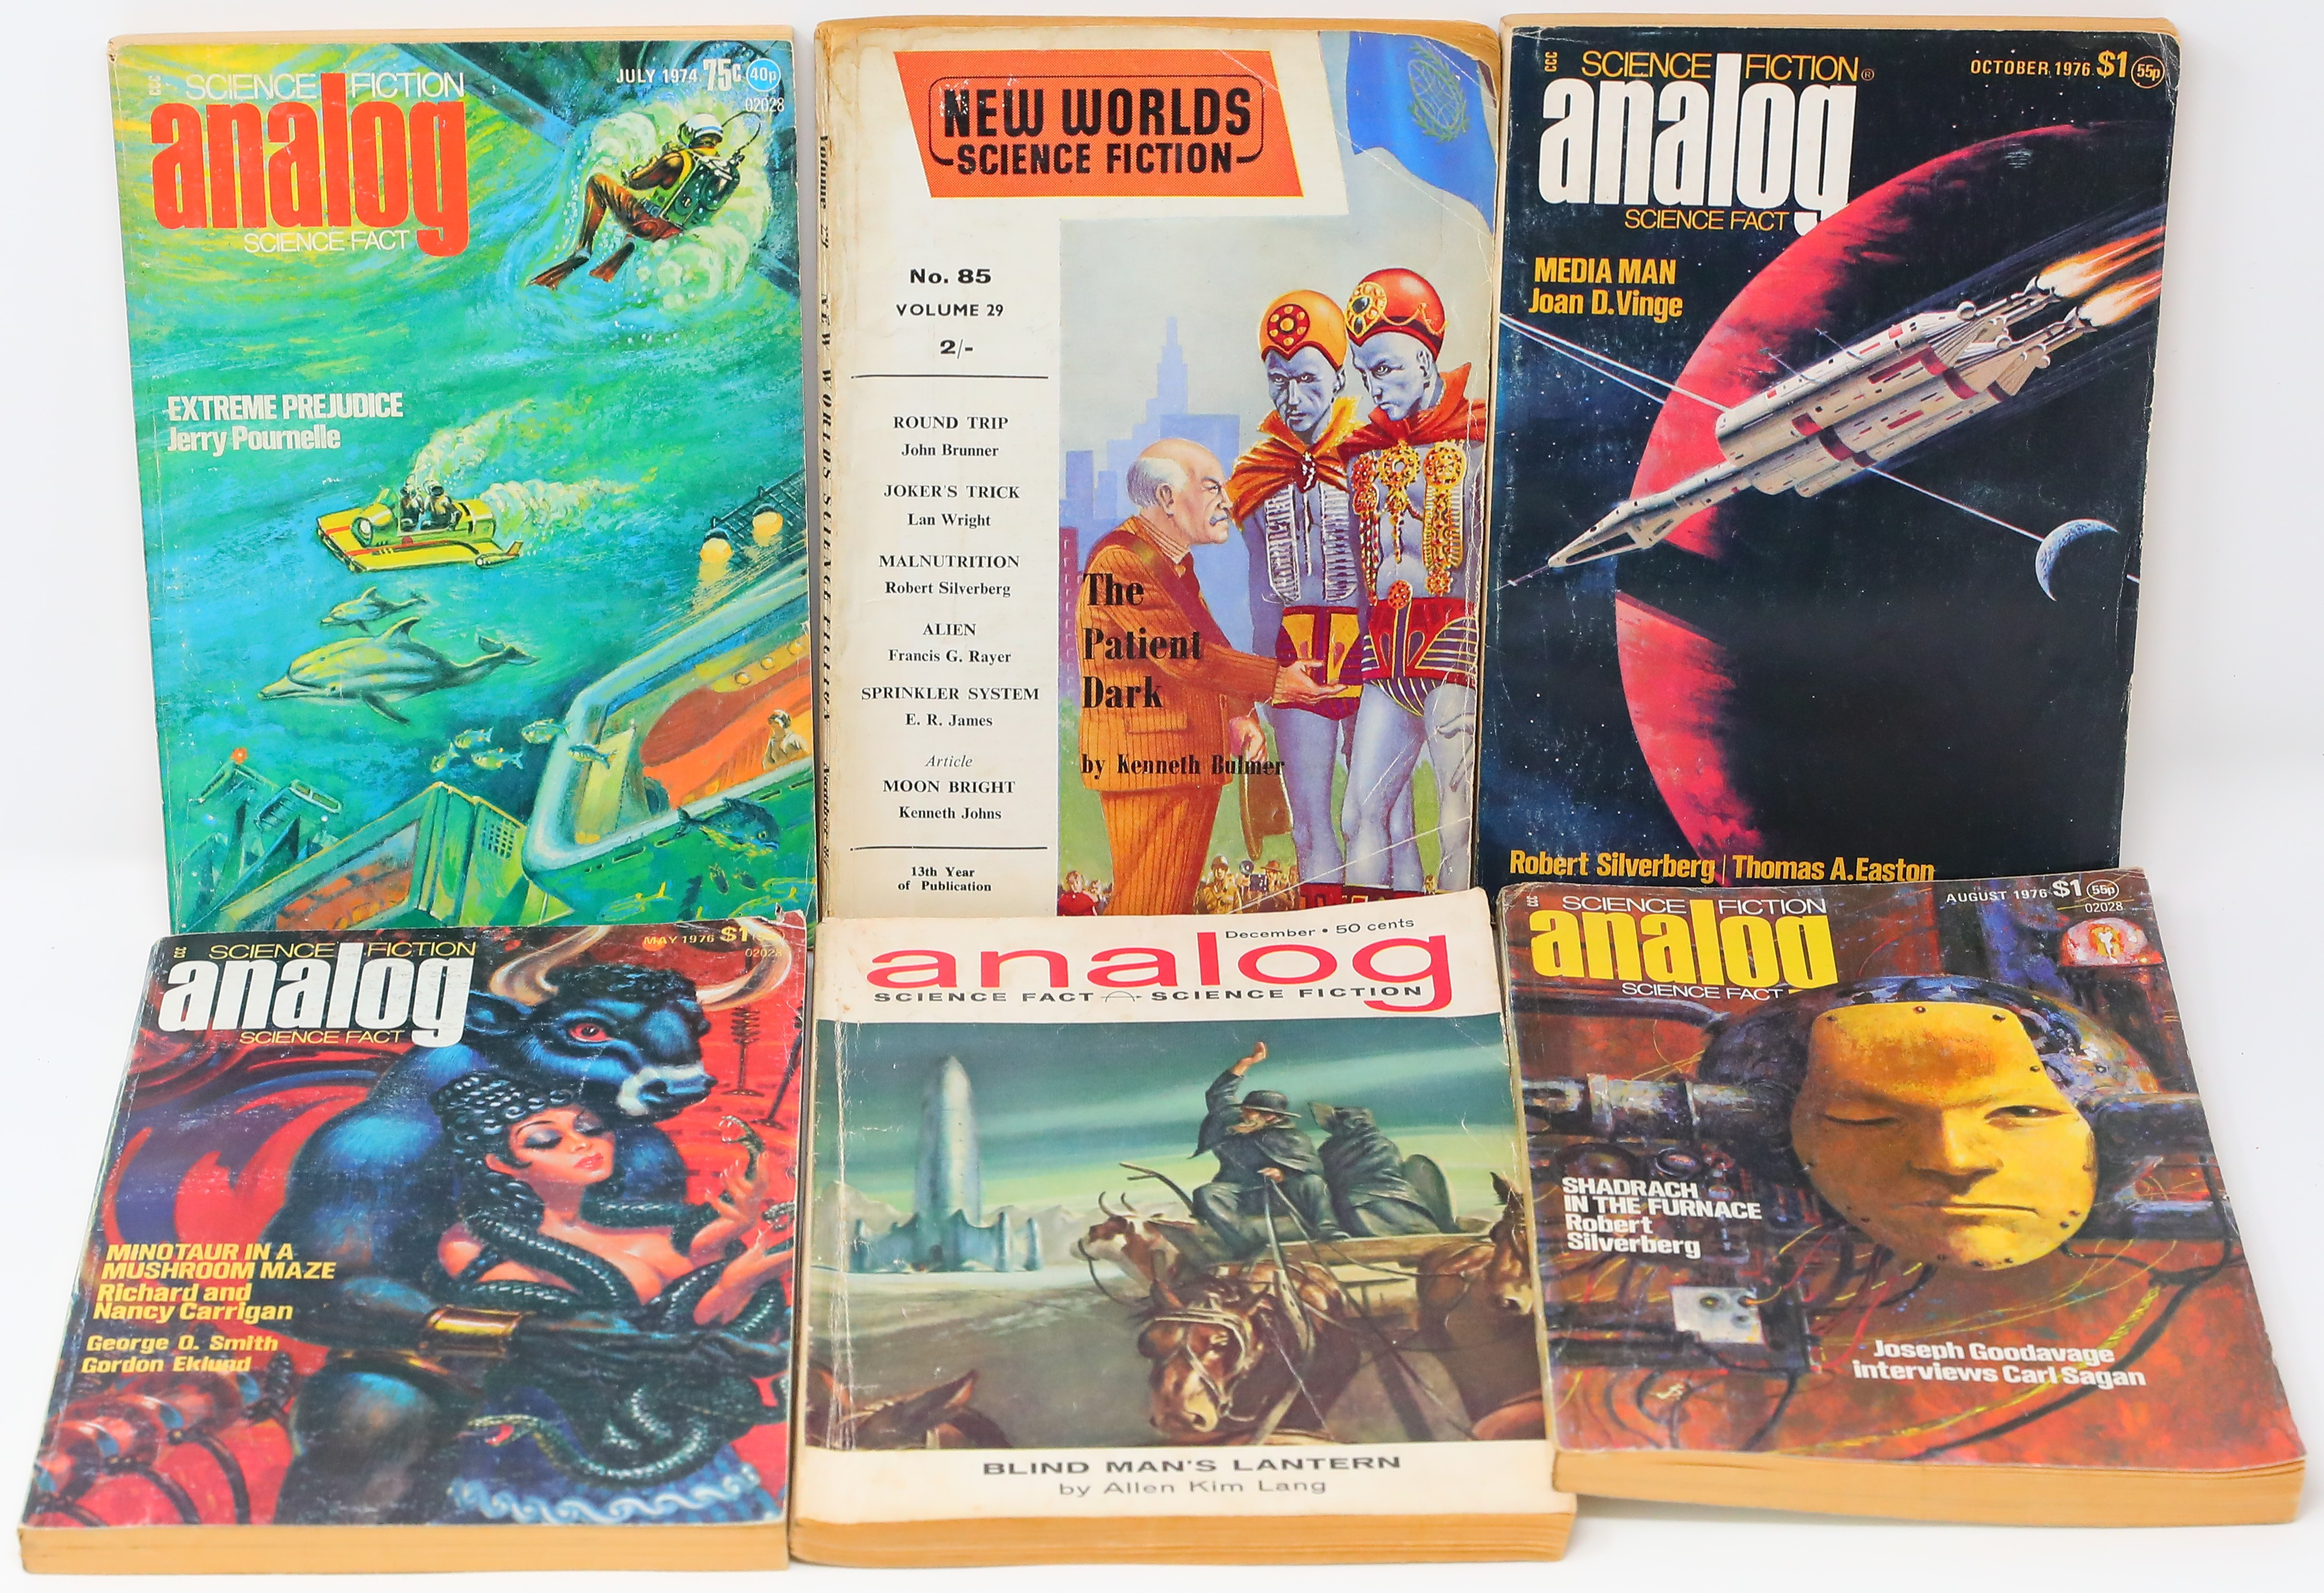 Former Beatle John Lennon's sci-fi books are being sold at auction. (Photo: GWS Auctions)